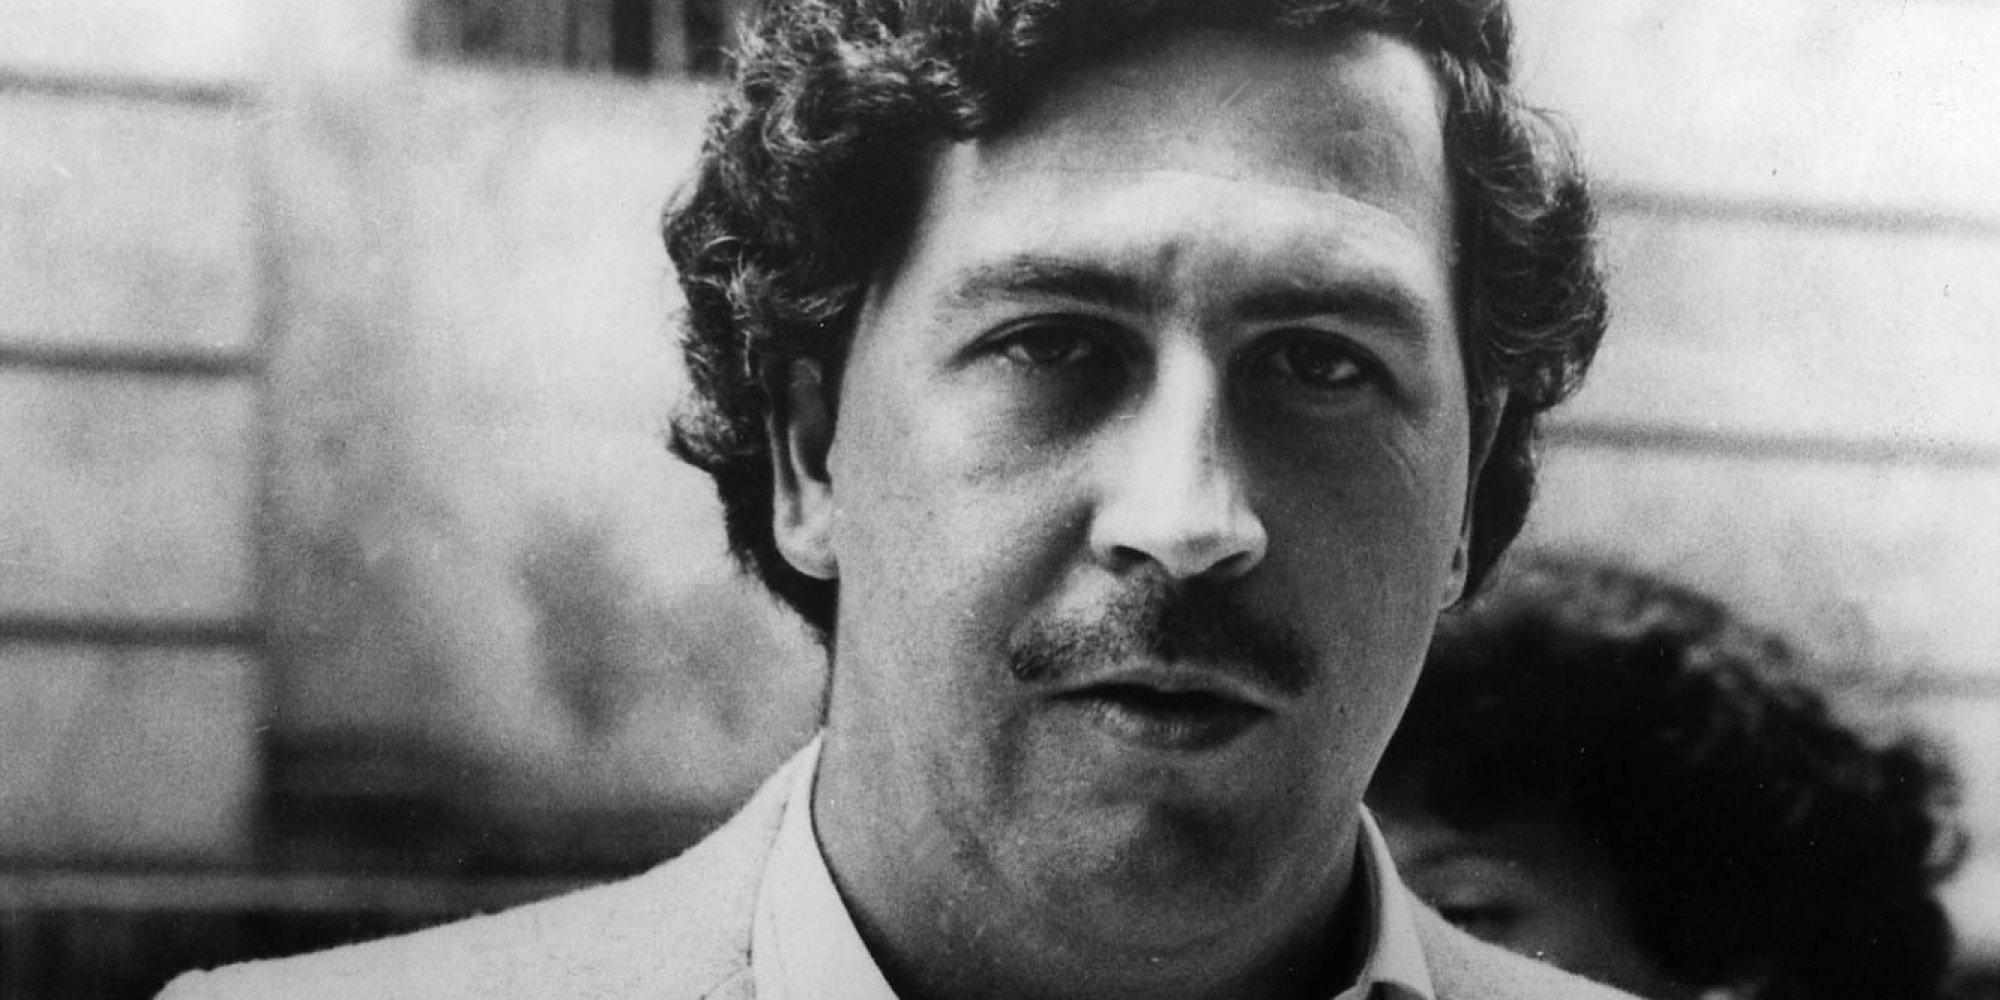 Pablo Escobar Gaviria - Identified as one of Colombia's leading cocaine traffickers. he dropped from sight in 1984 in the midst of a U.S.Colombian anti-drug crackdown. The U.S. government requested hois extradition, if caught, to face trafficking charges in the United States. Escobar, in his mid-30s, had financed housing and other improvements for poor neighborhoods of his hometown, the city of Medellin. (AP-Photo) 1984